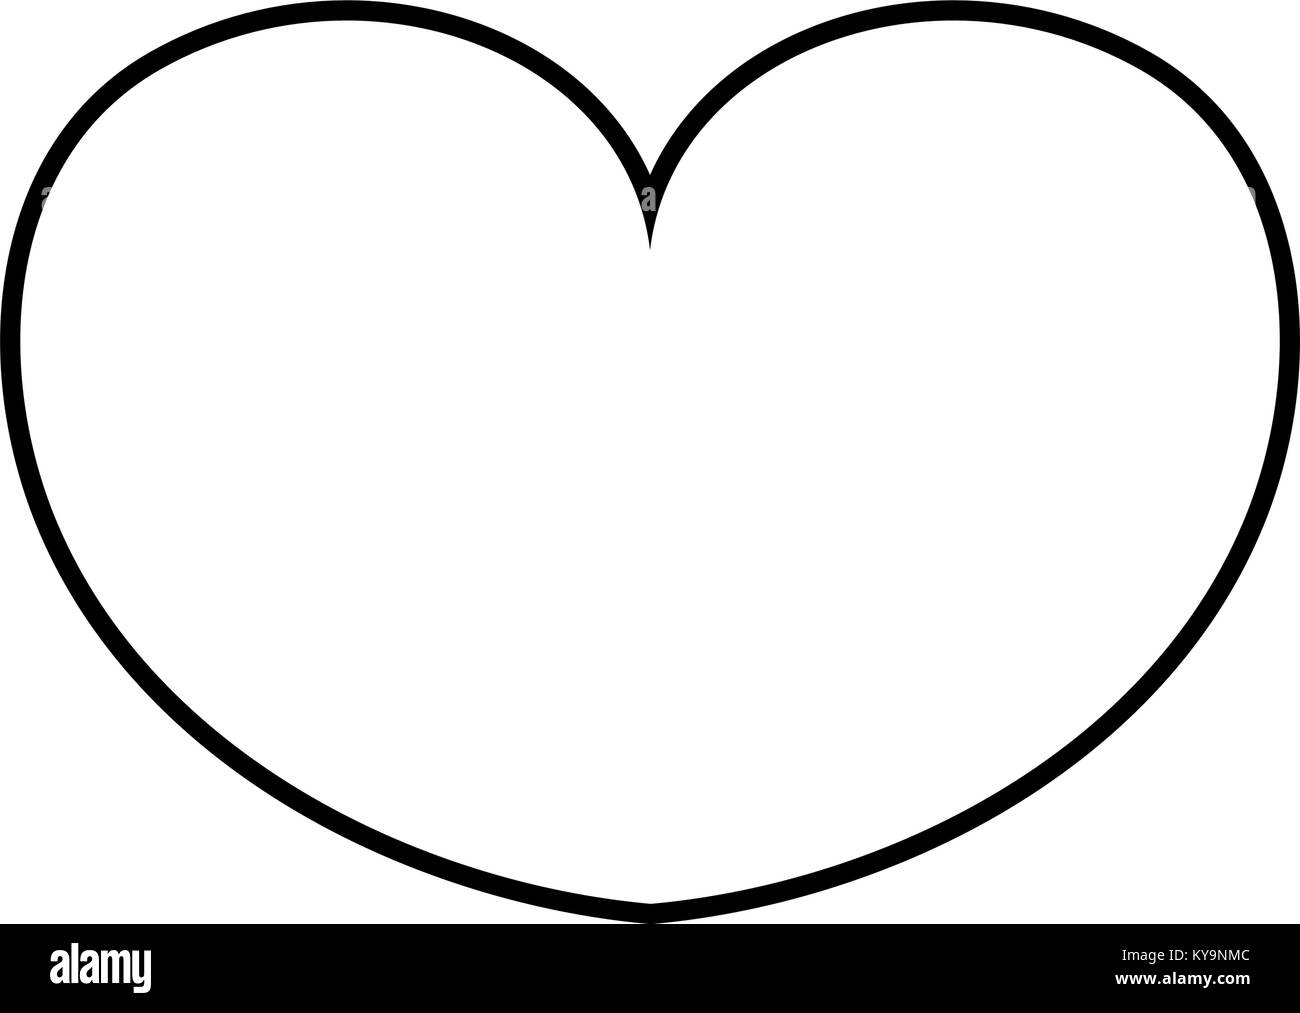 line passion heart sign of love design - Stock Image